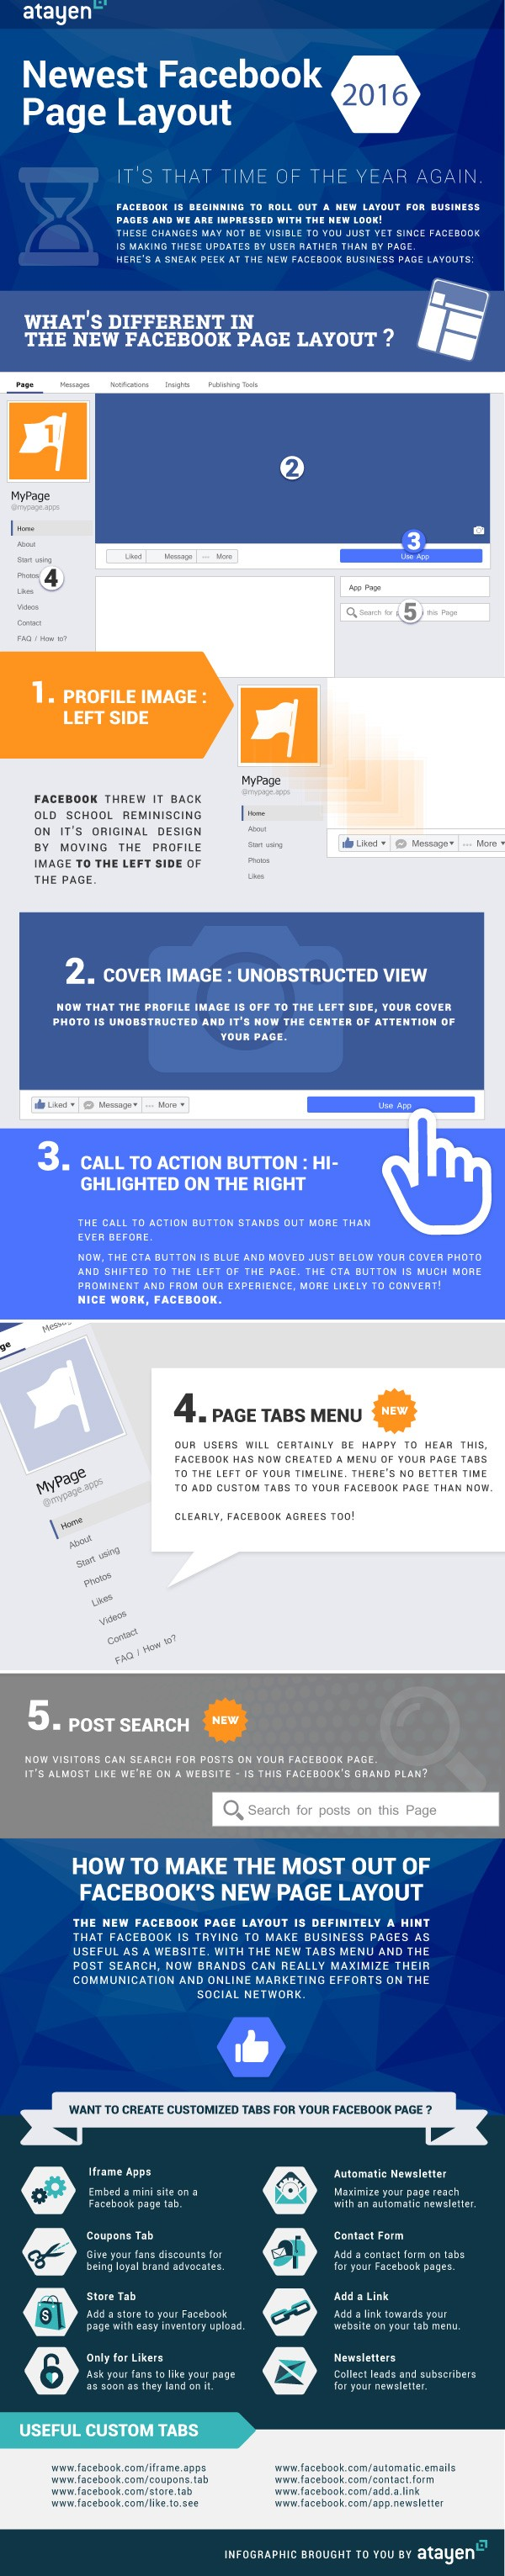 [Infographic] A Look Inside The New Facebook Page Layout - An Infographic from IFRAME APPS